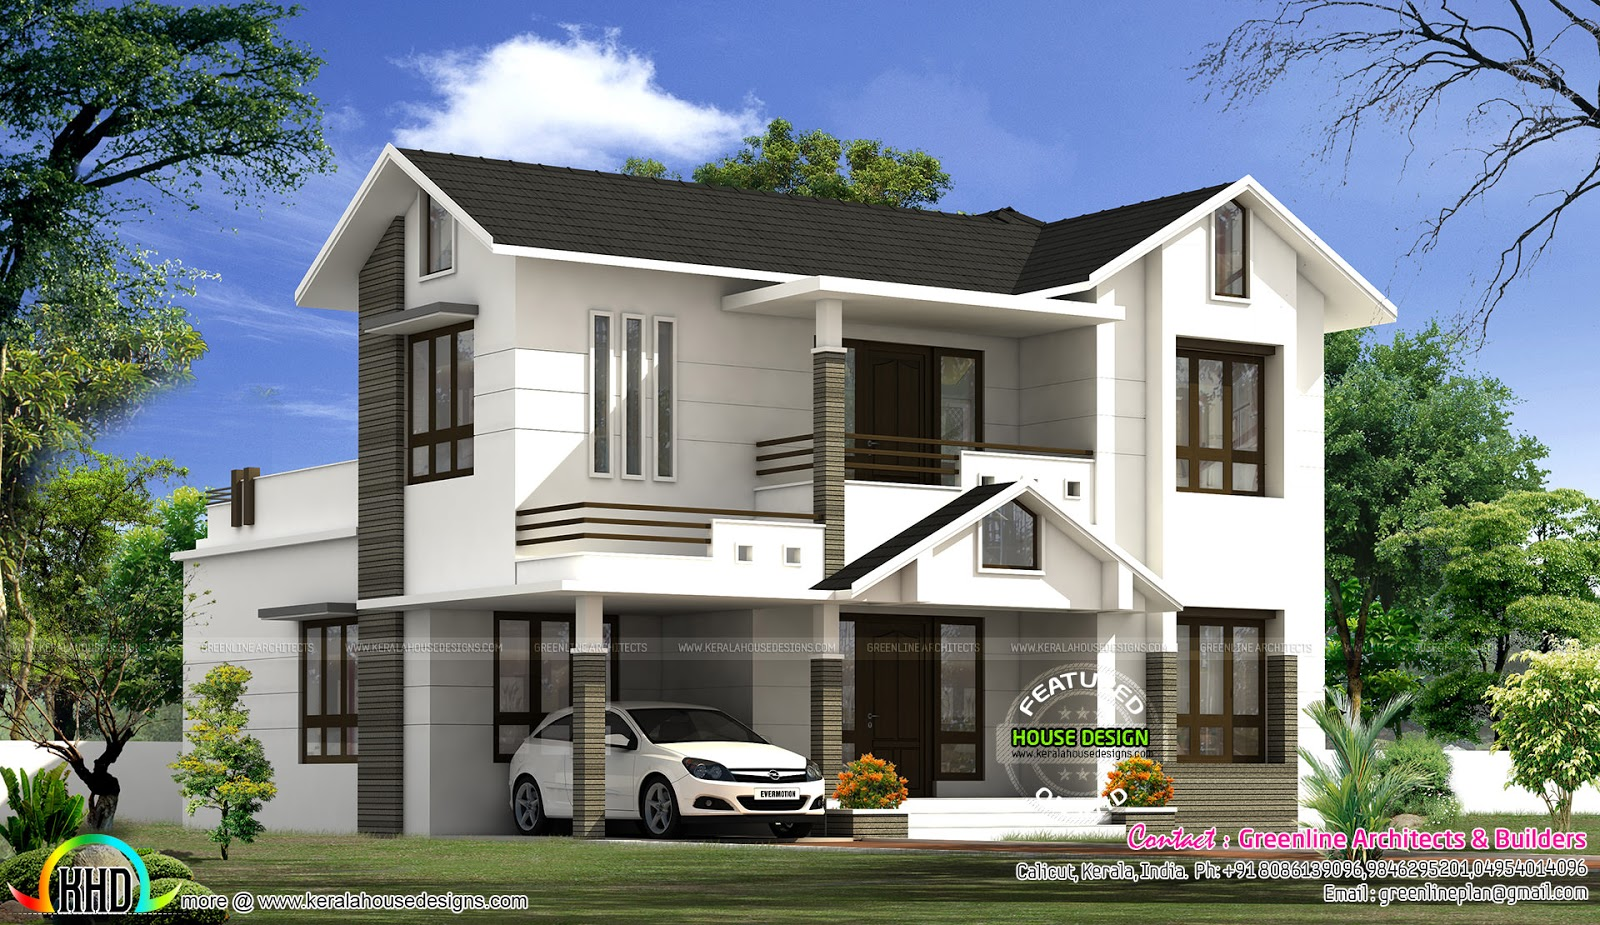 greeline house design - 32+ Simple Small House Compound Design PNG